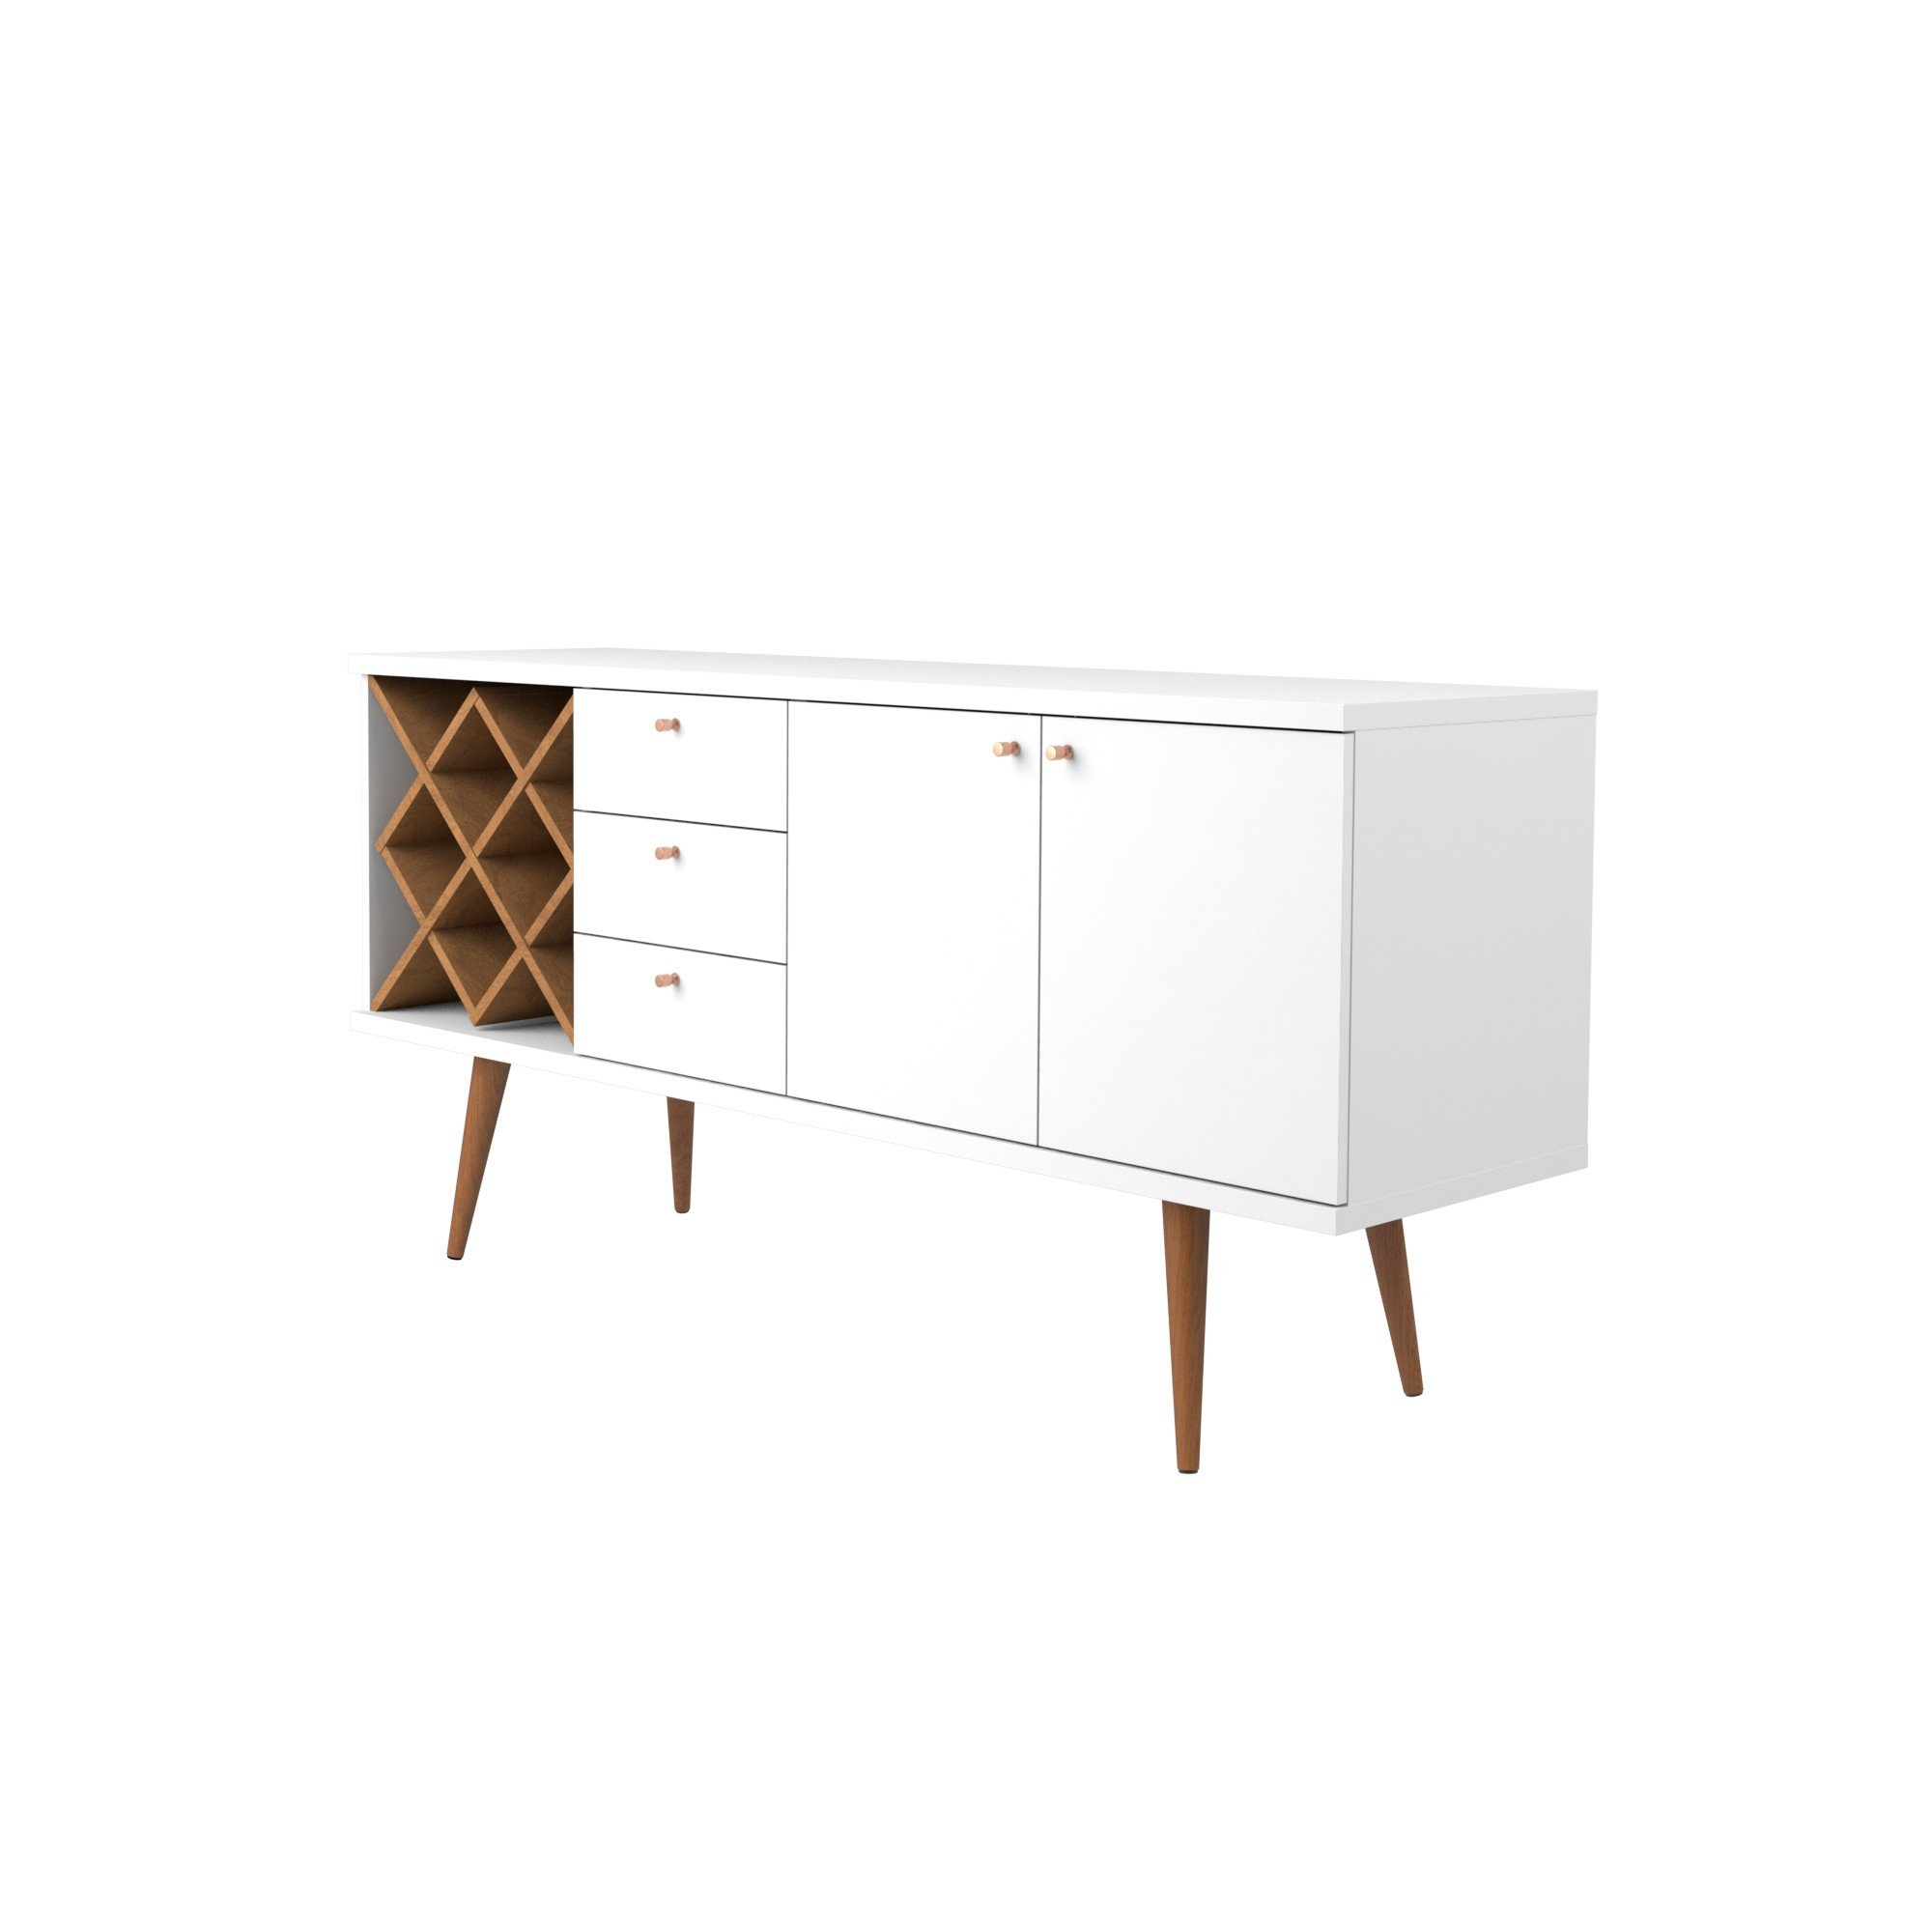 Manhattan Comfort Utopia Collection Mid Century Modern Sideboard Buffet Stand With 4 Bottle Wine Rack, Cabinet and 3 Drawers, Splayed Legs, White by Manhattan Comfort (Image #4)